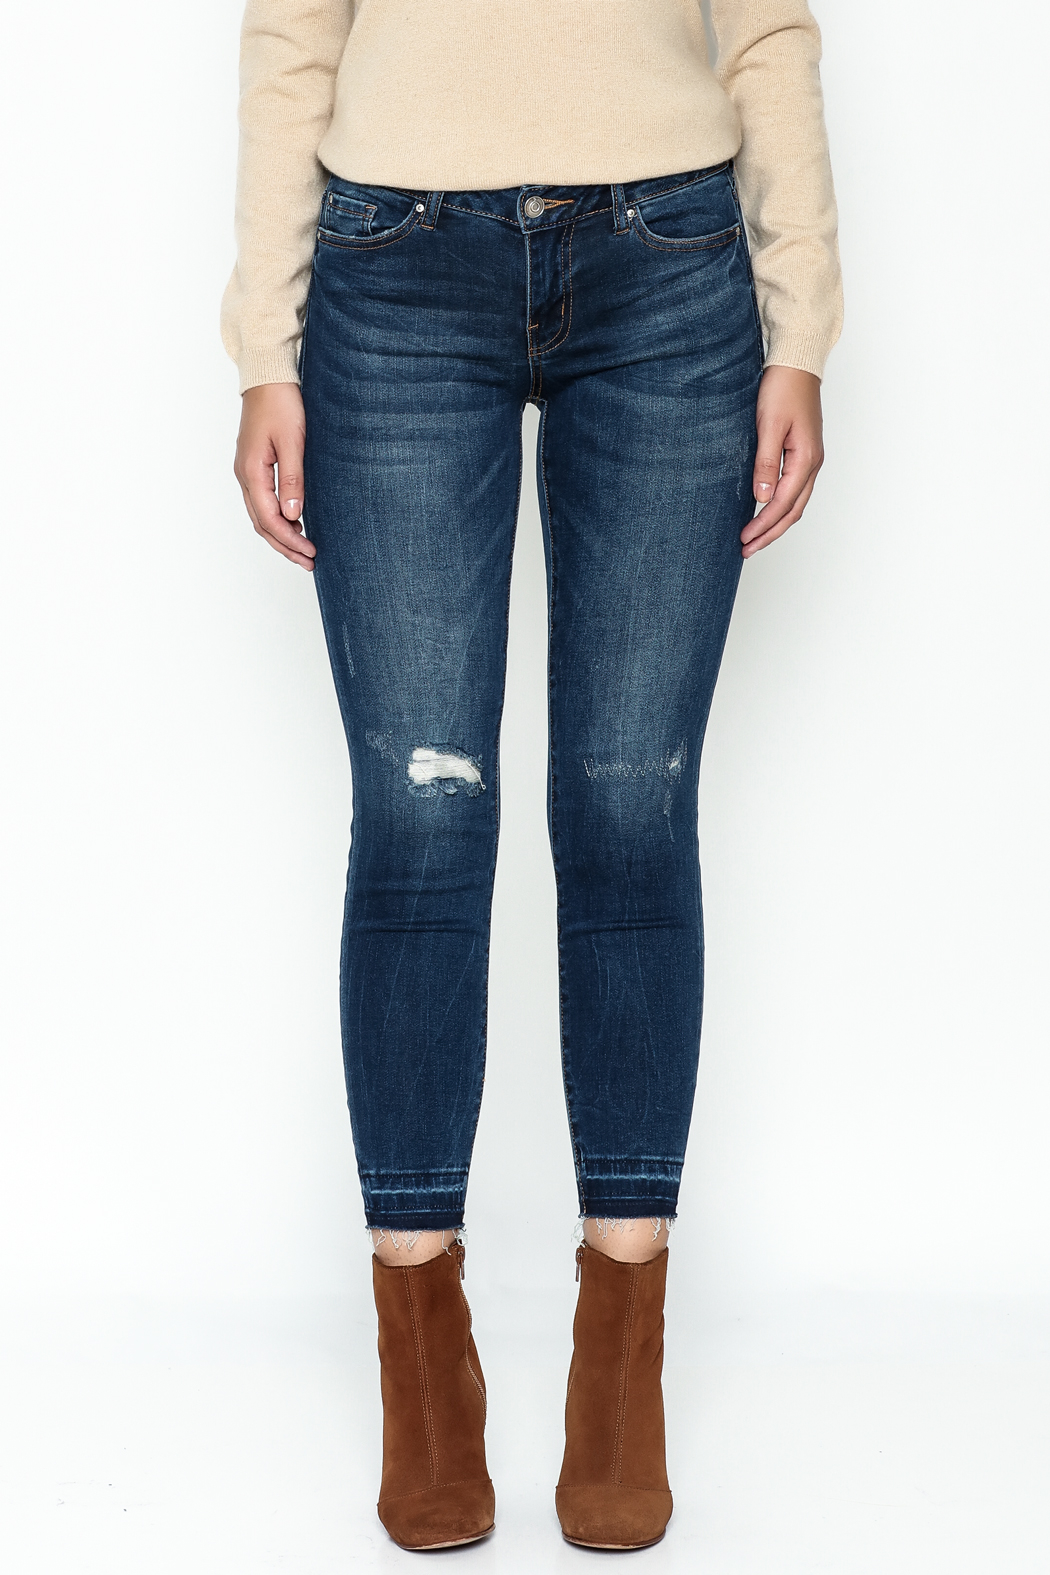 DEX Jeans Madison Distressed Cropped Jeans - Side Cropped Image